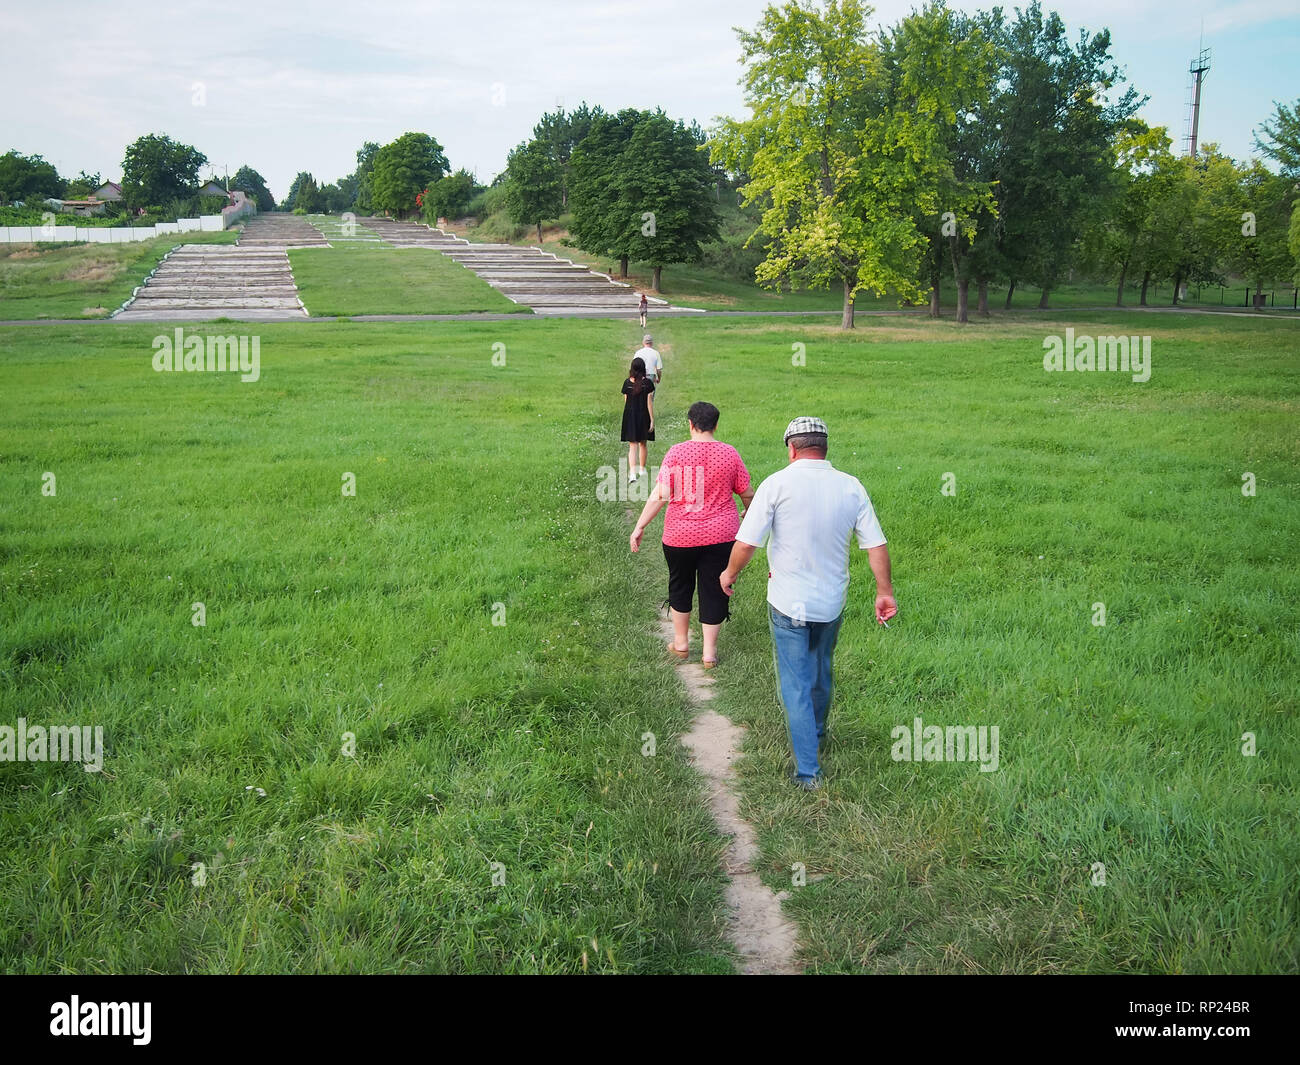 People follow the path one after another - Stock Image